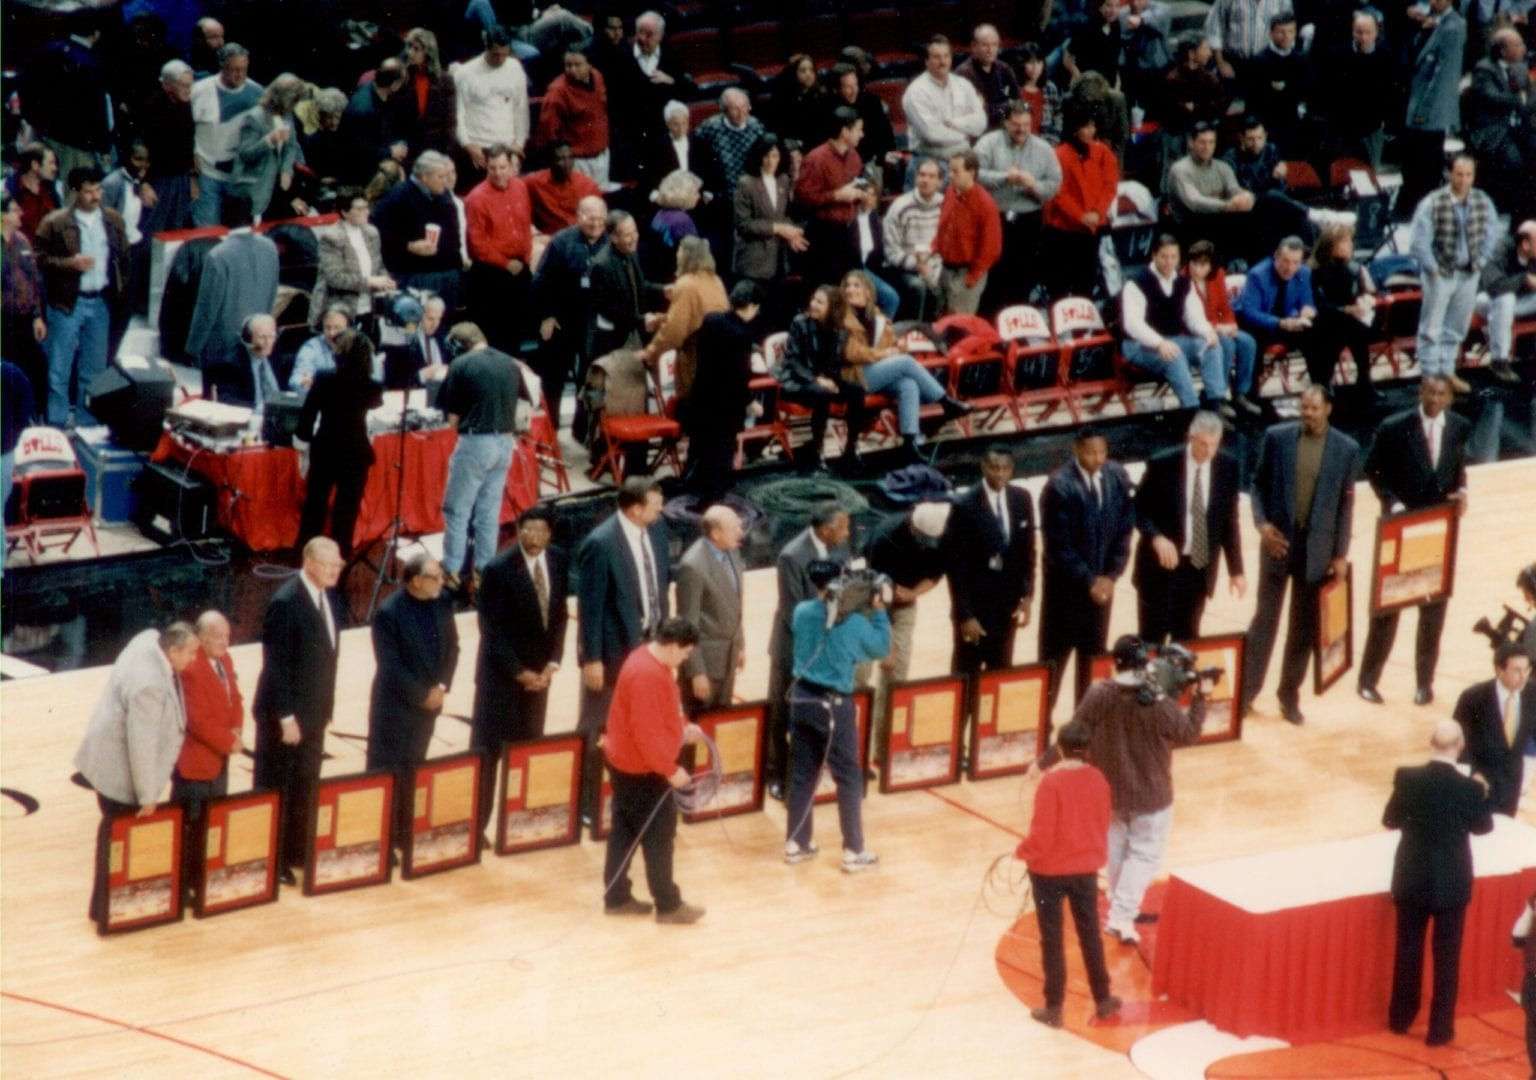 The Greatest players of Chicago Bulls lining up for awards